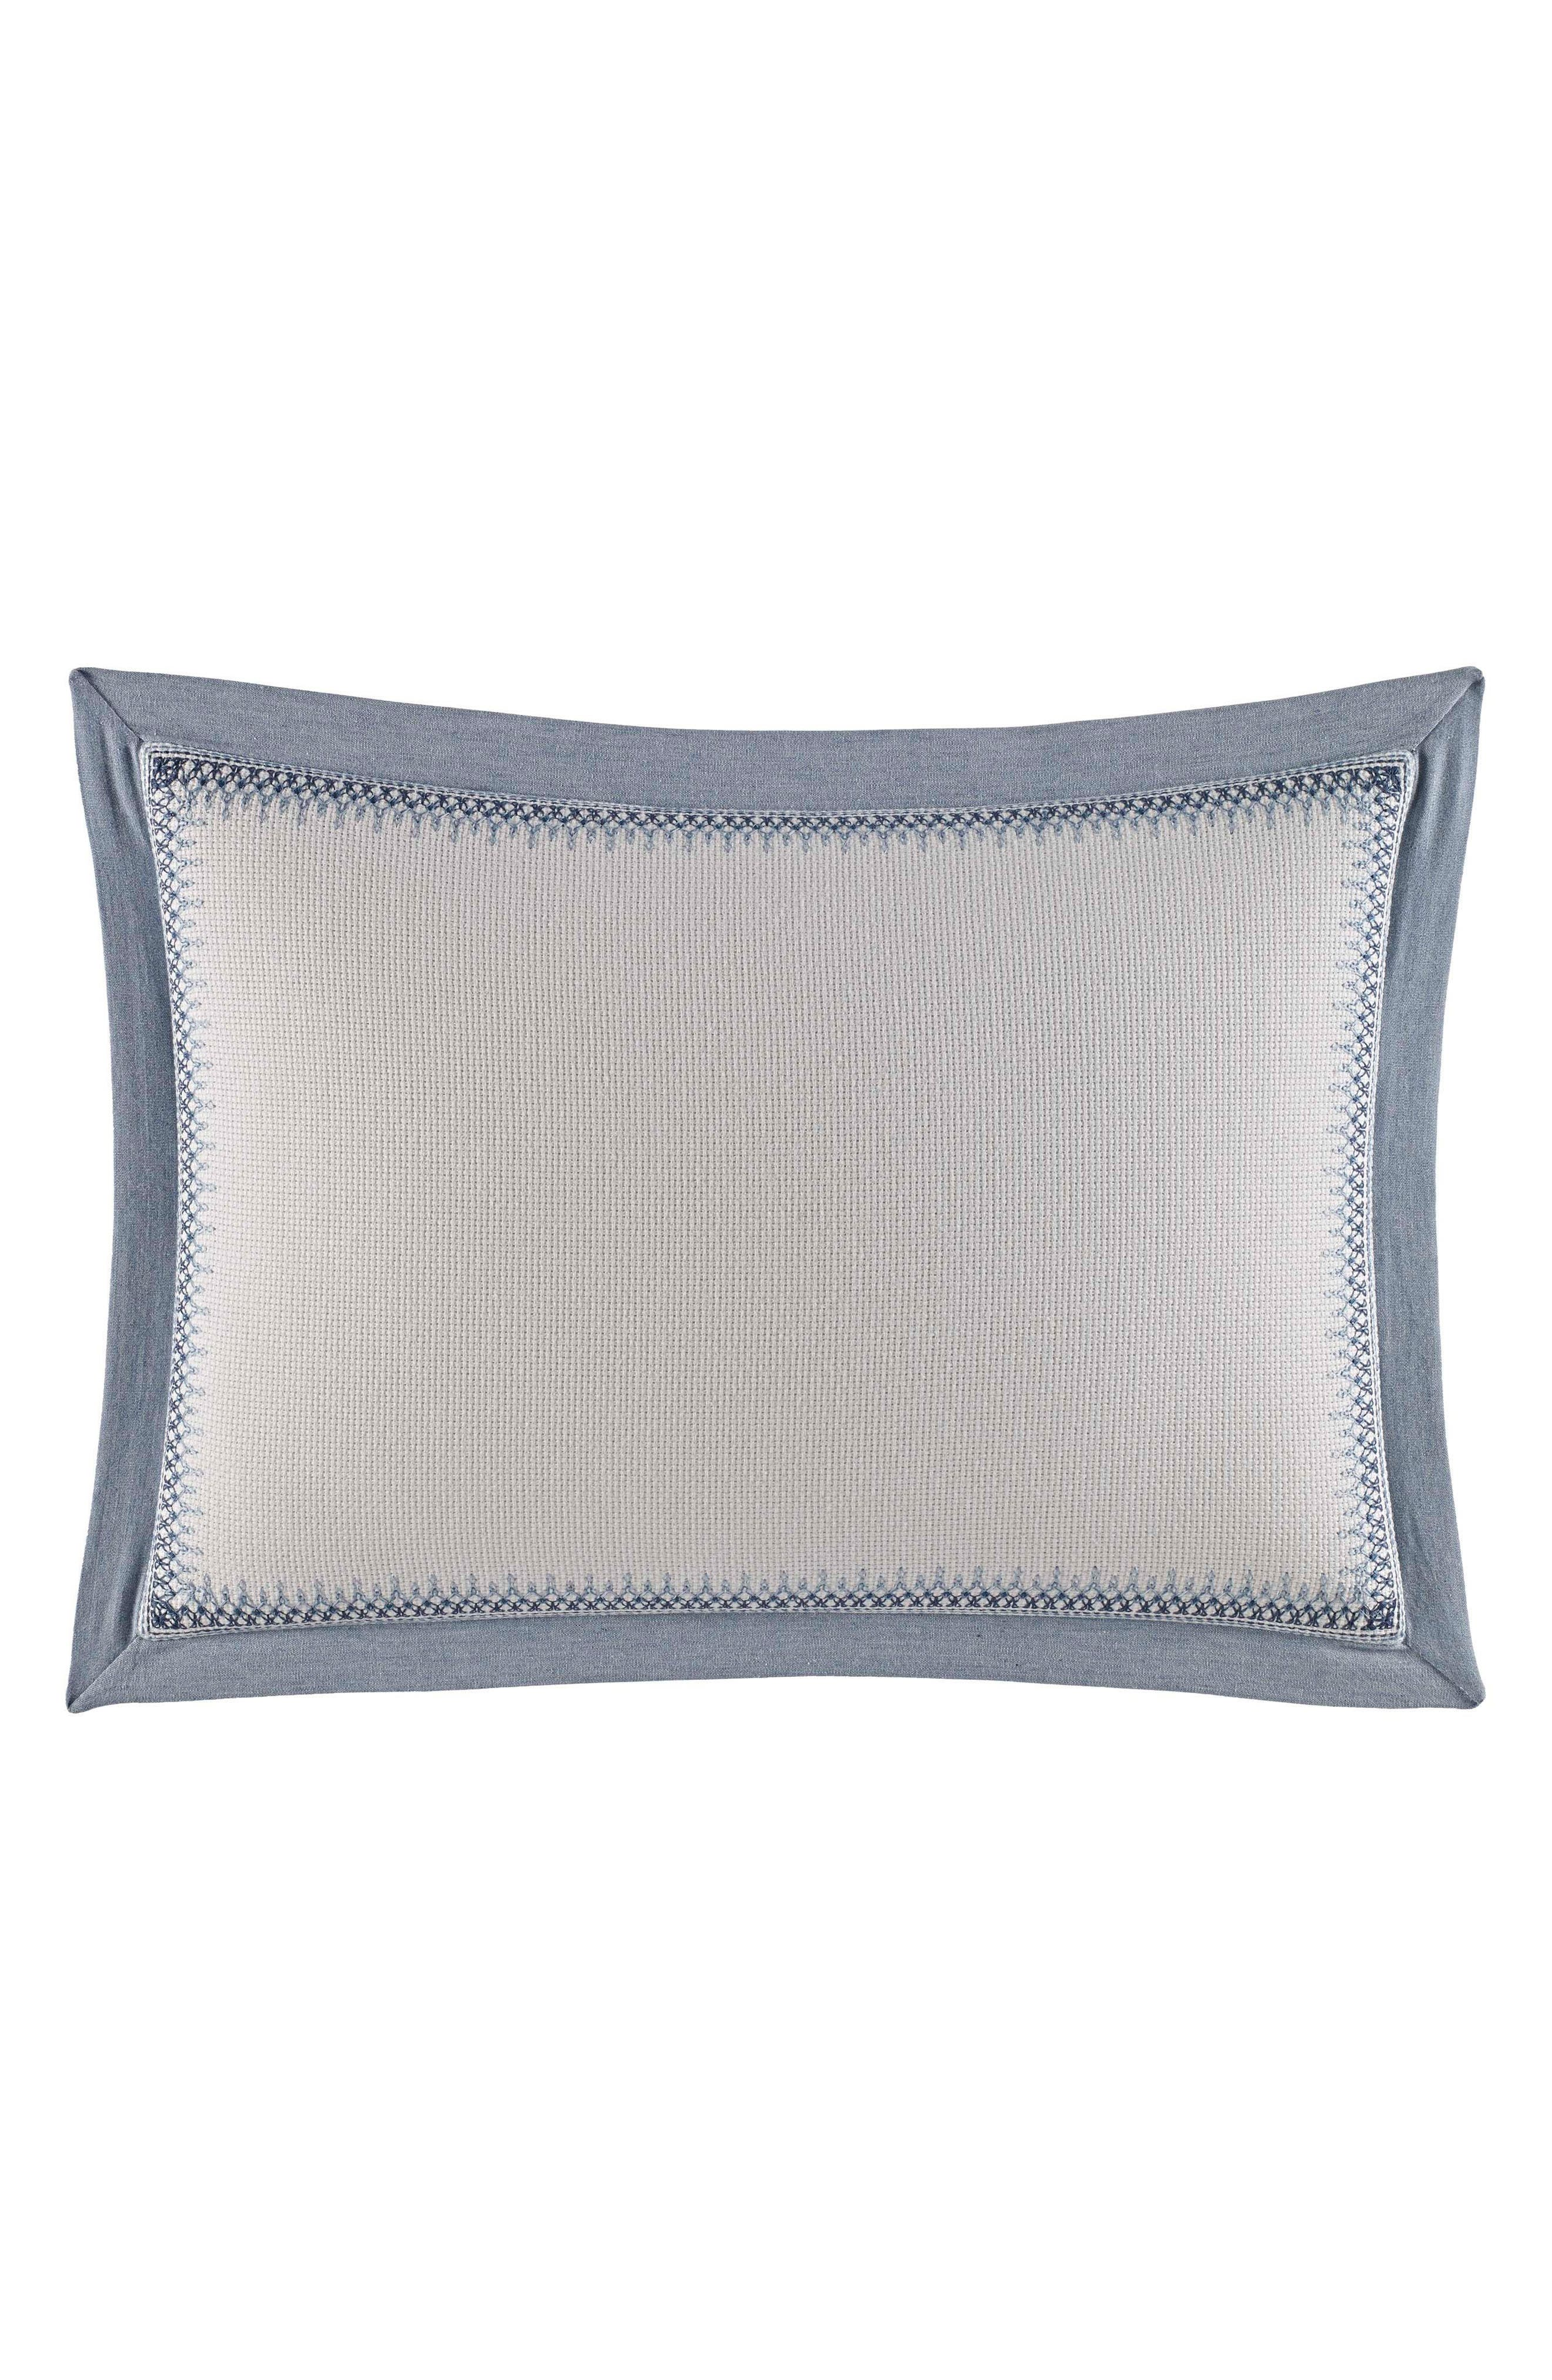 Main Image - Nautica Abbot Embroidered Accent Pillow